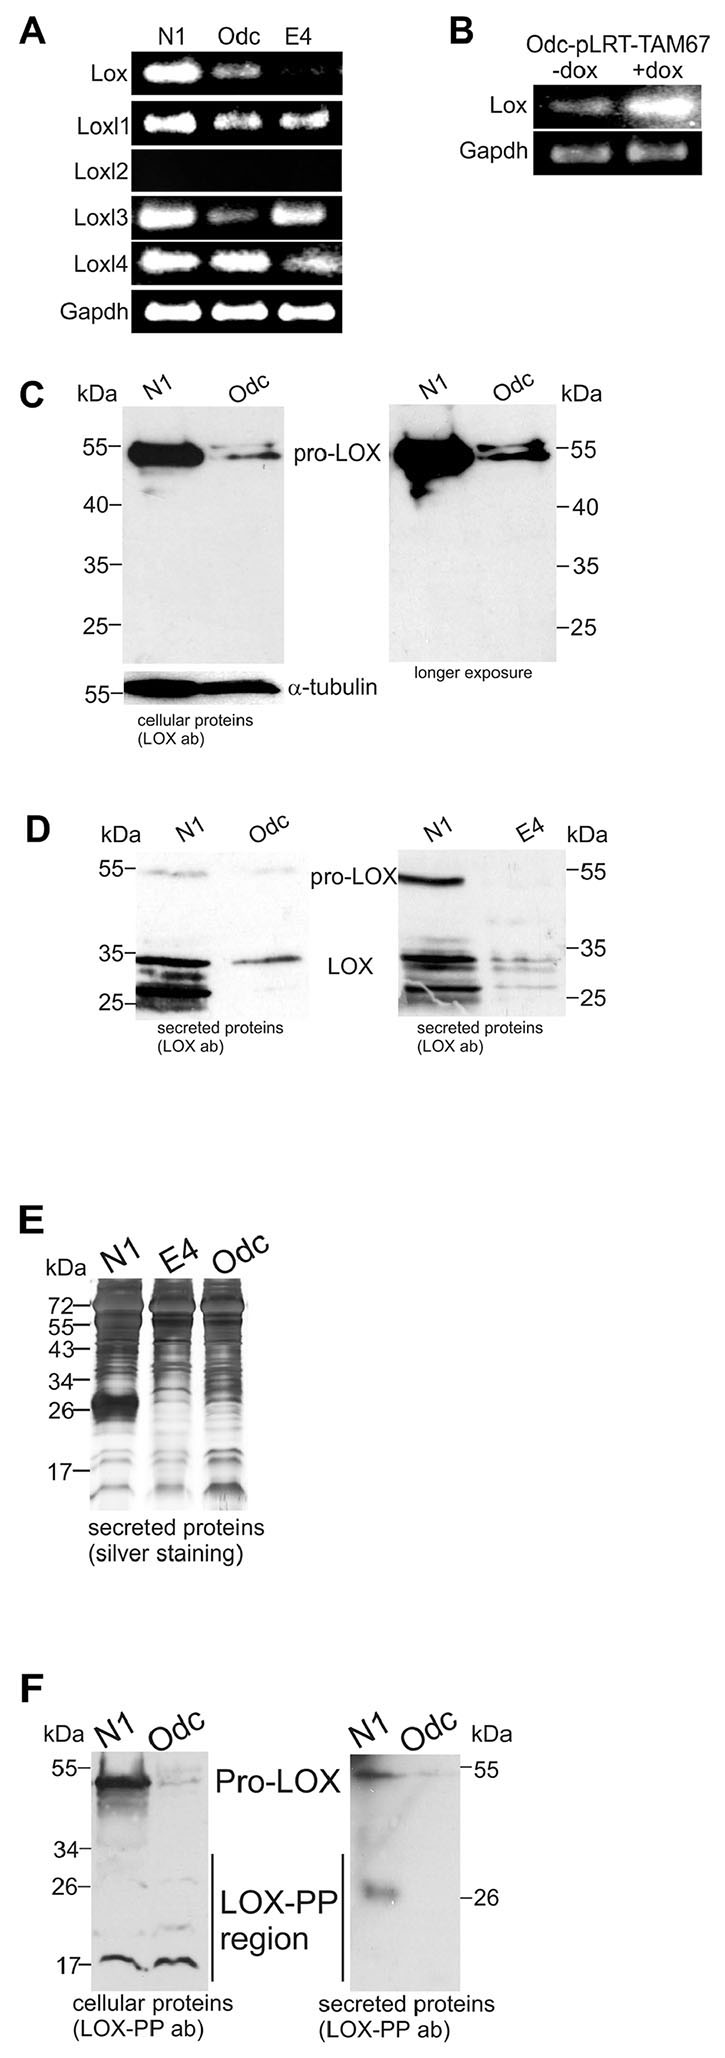 Expression levels of Lox and Lox-like1-4 in normal (N1), ODC-transformed (Odc), and Ras-transformed (E4) mouse fibroblasts.